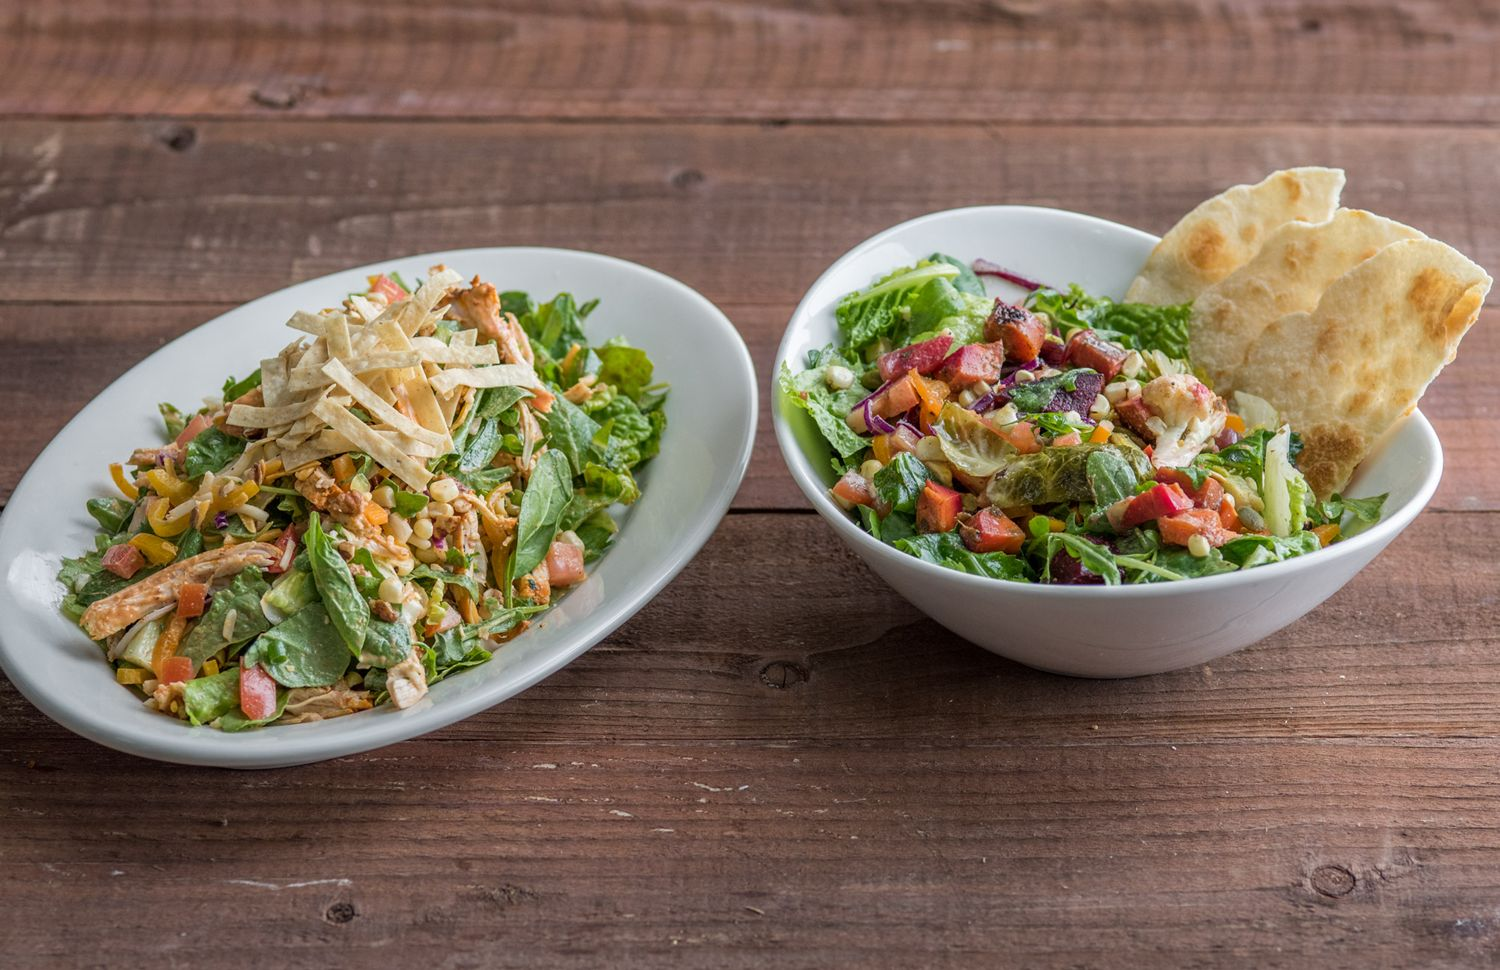 Sharky's Woodfired Mexican Grill Features Summer's Best Flavors in Two New Fresh and Satisfying Seasonal Salads